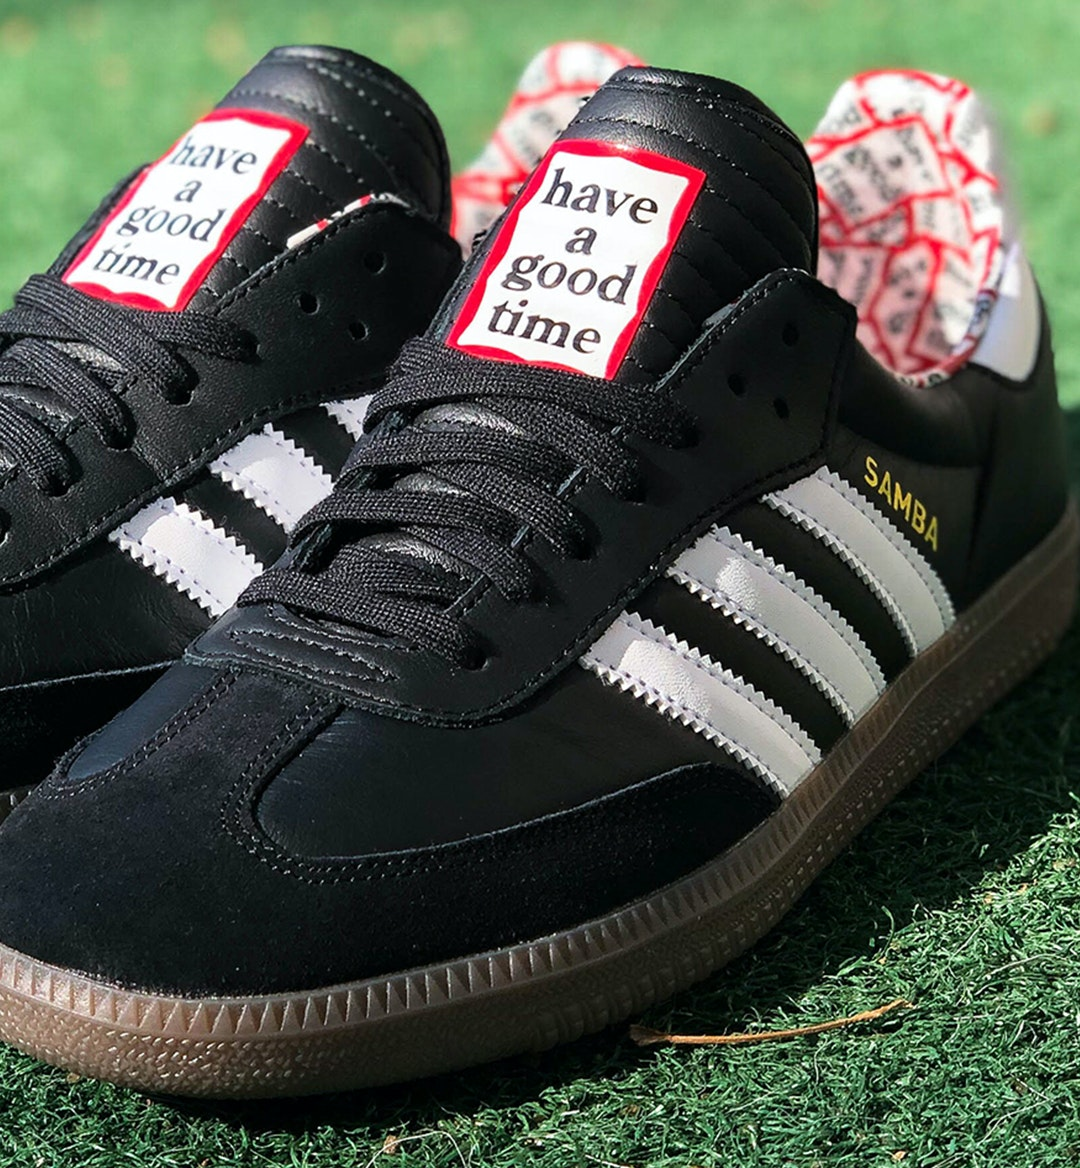 Adidas Originals Samba mobile